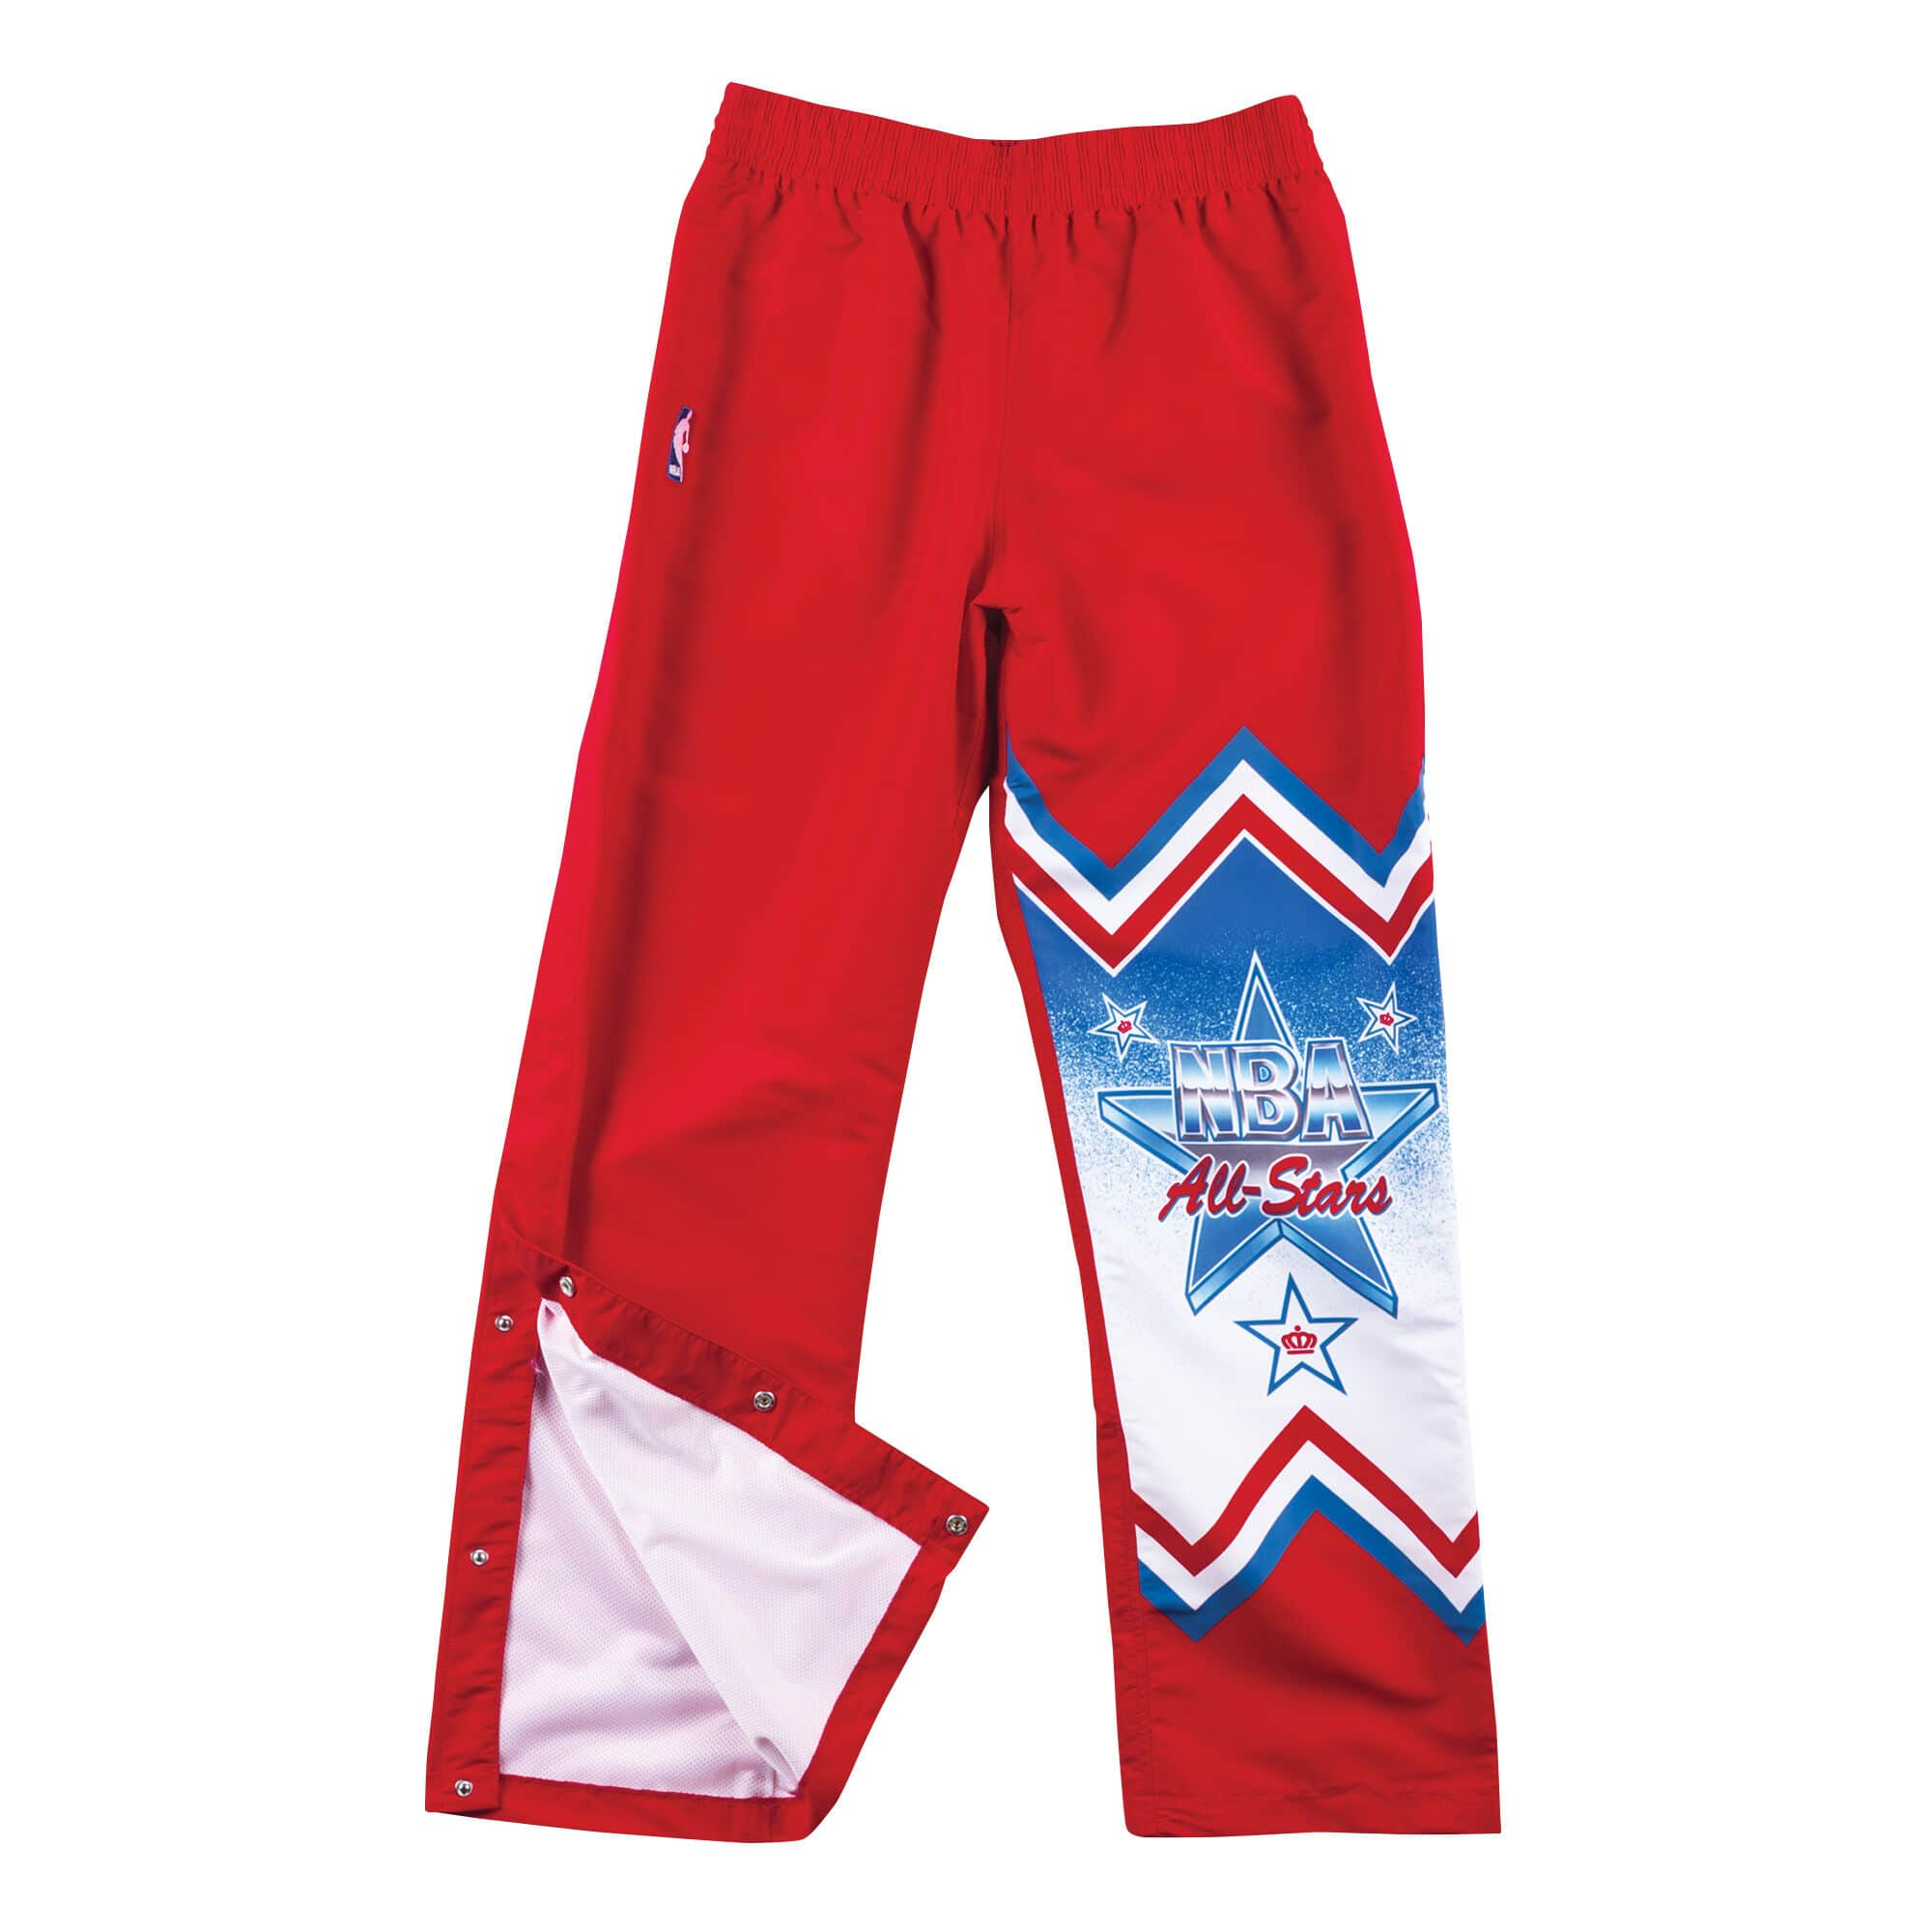 Authentic Warm Up Pants All-Star West 1991